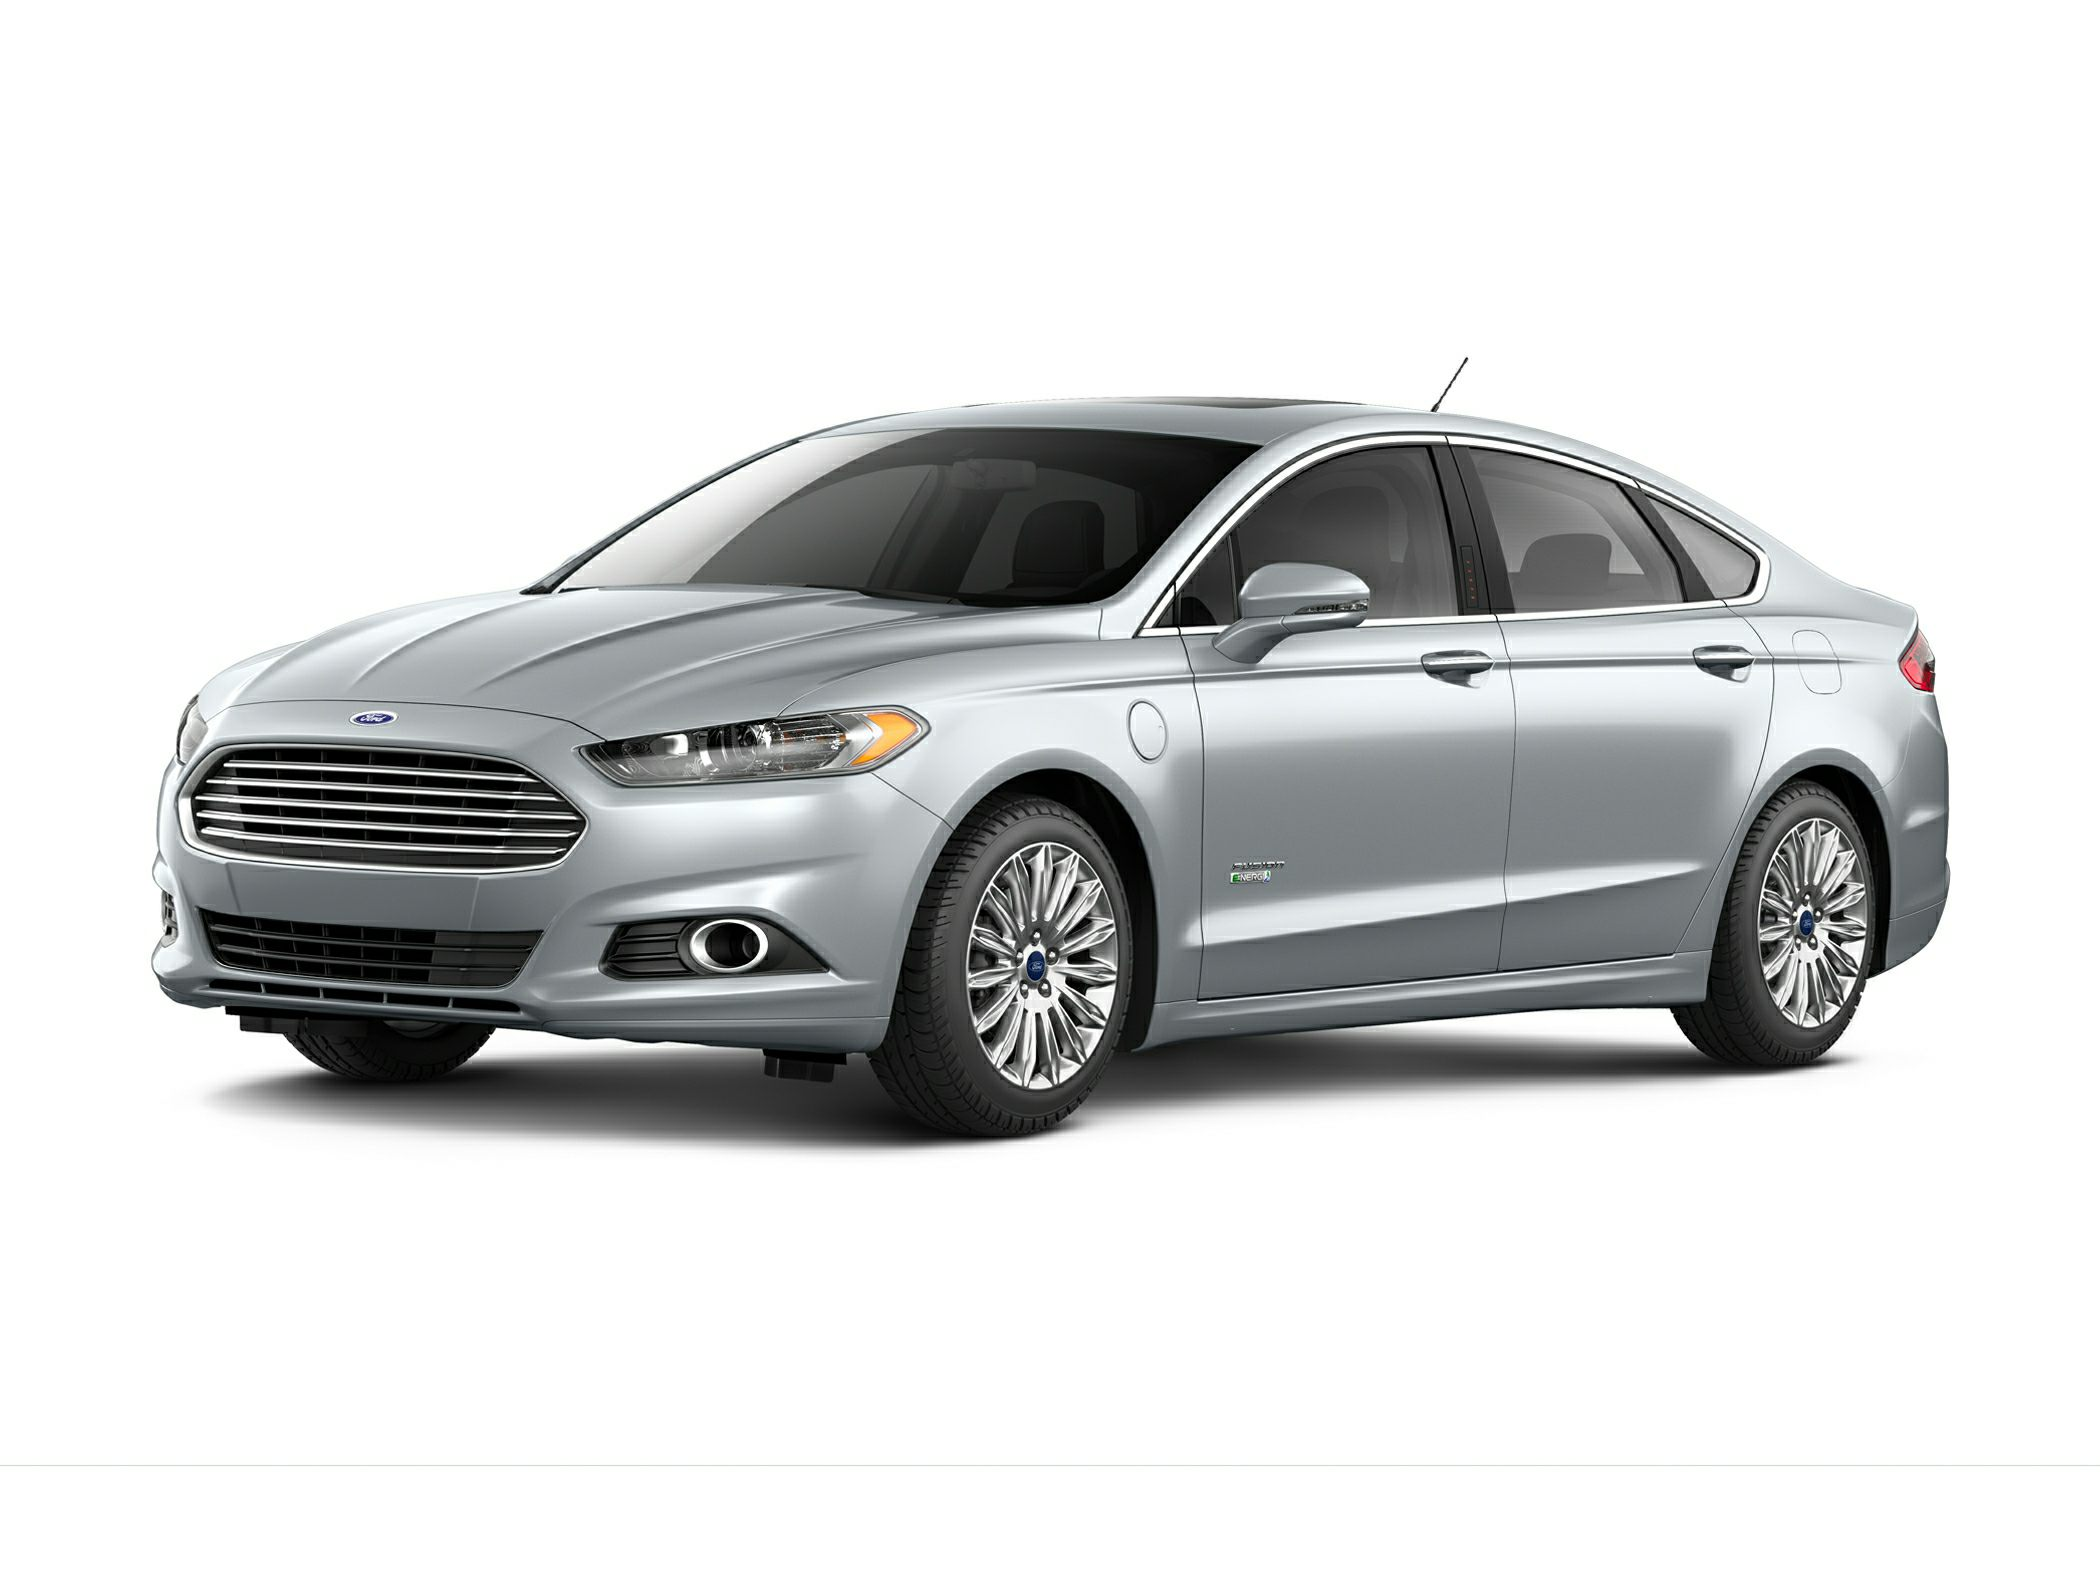 2014 ford fusion energi information and photos momentcar. Black Bedroom Furniture Sets. Home Design Ideas